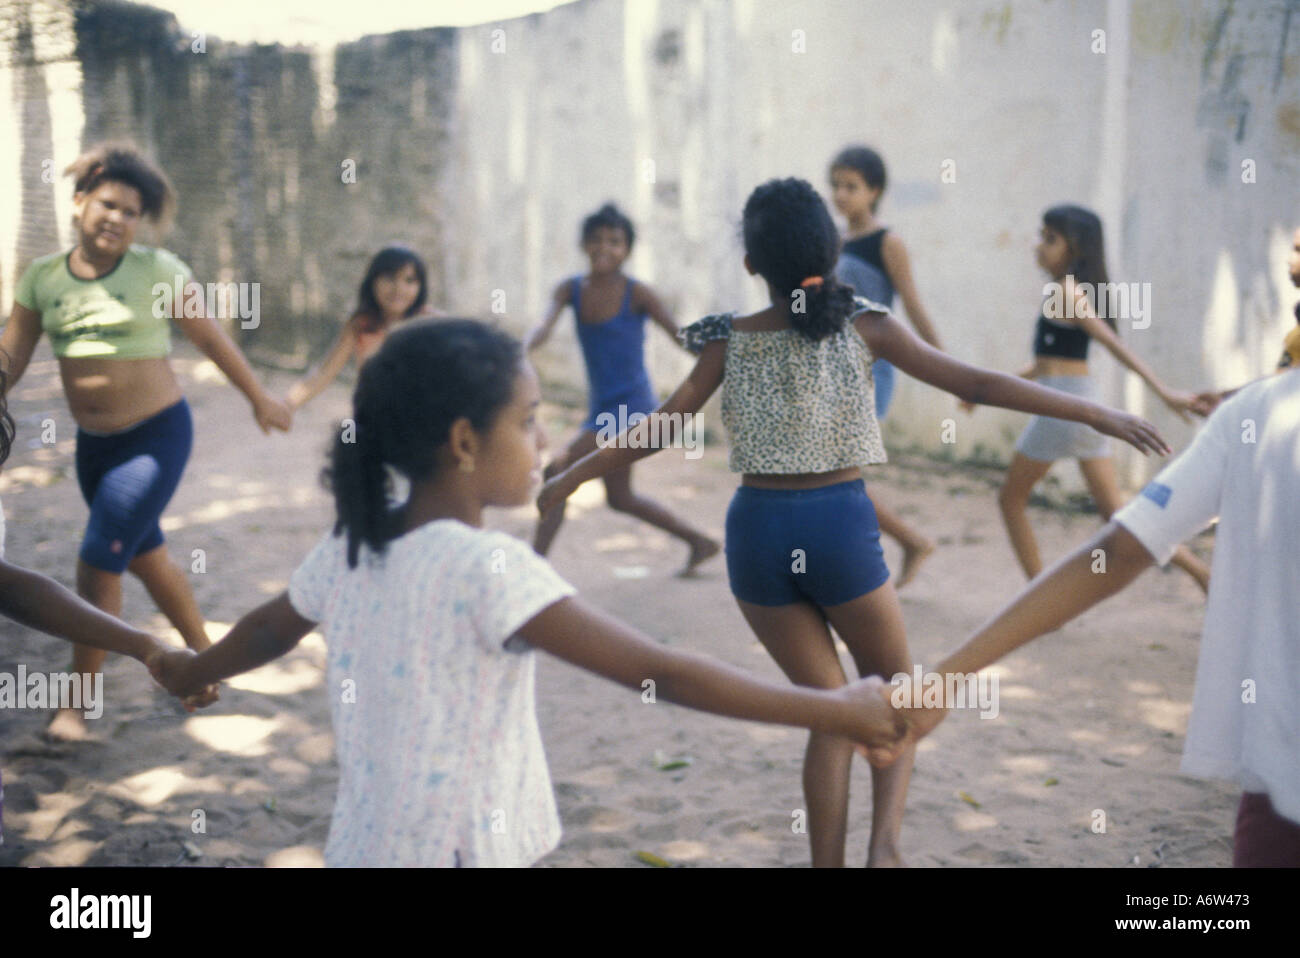 Multi-ethnic group of poor children plays ring-around-a-rosy, Natal, Rio Grande do Norte State, northeastern Brazil. - Stock Image